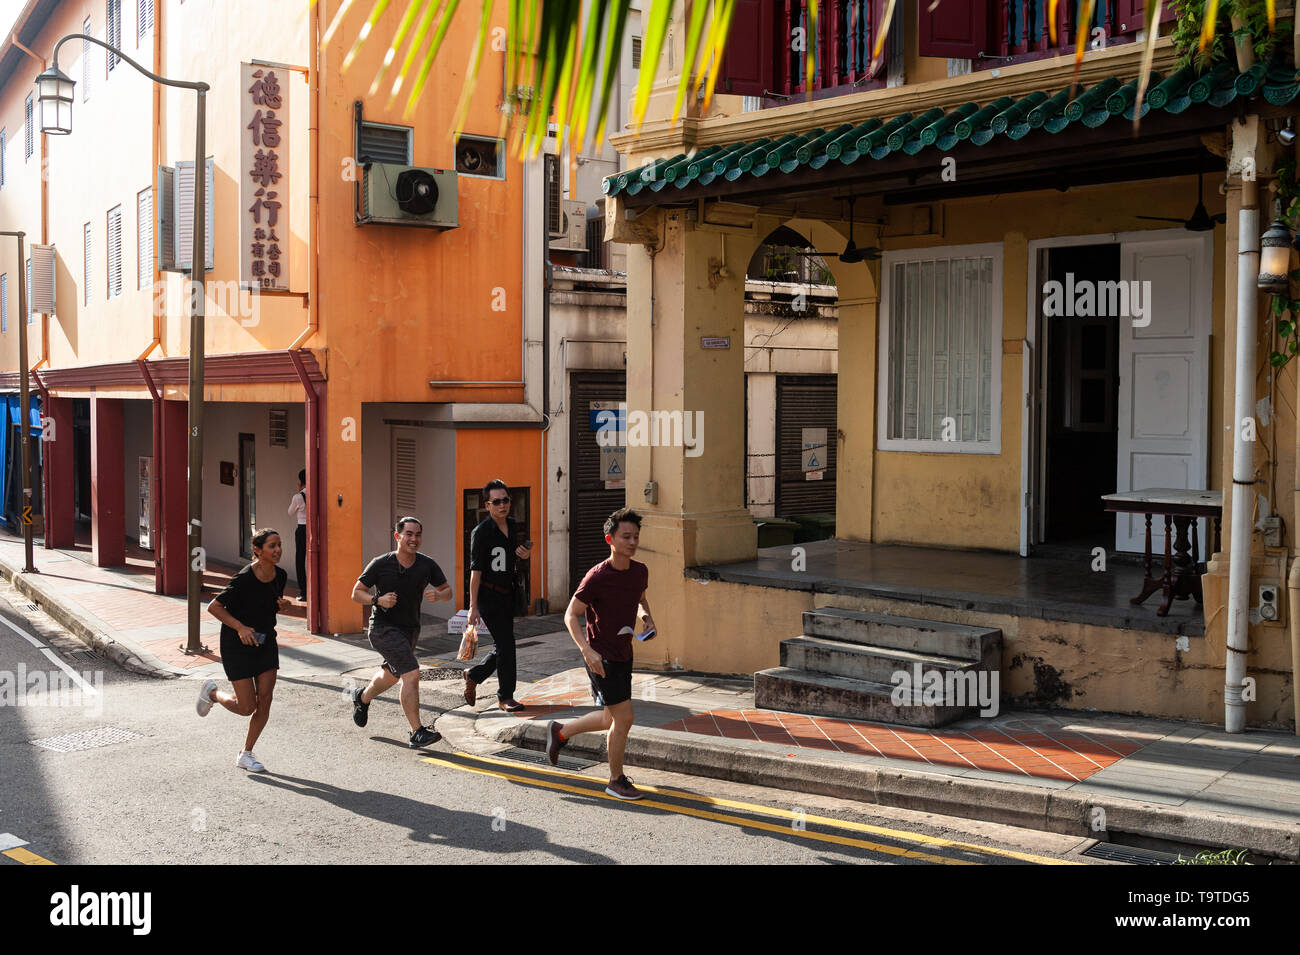 09.05.2019, Singapore, Republic of Singapore, Asia - People are seen walking along a street in Chinatown. - Stock Image